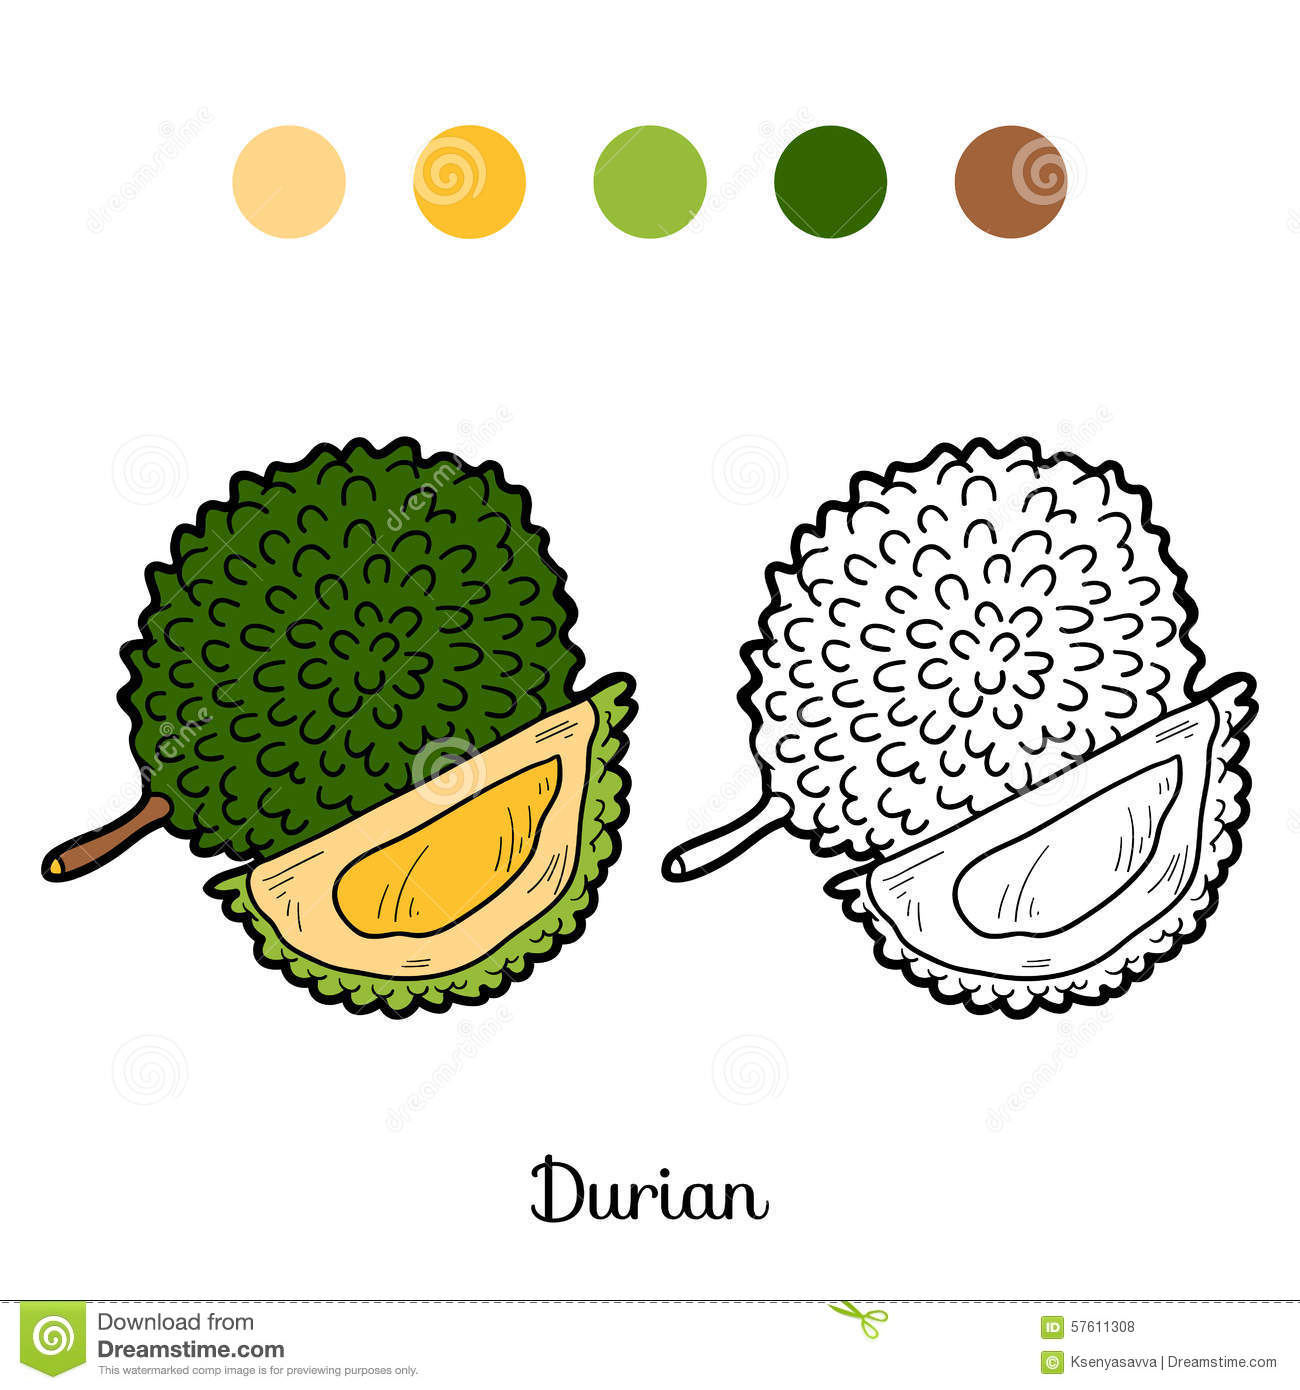 durian fruit outline 2015-3-23 essay outline/plan service  platelet count of children with dengue fever biology essay print  the durian is the fruit of.